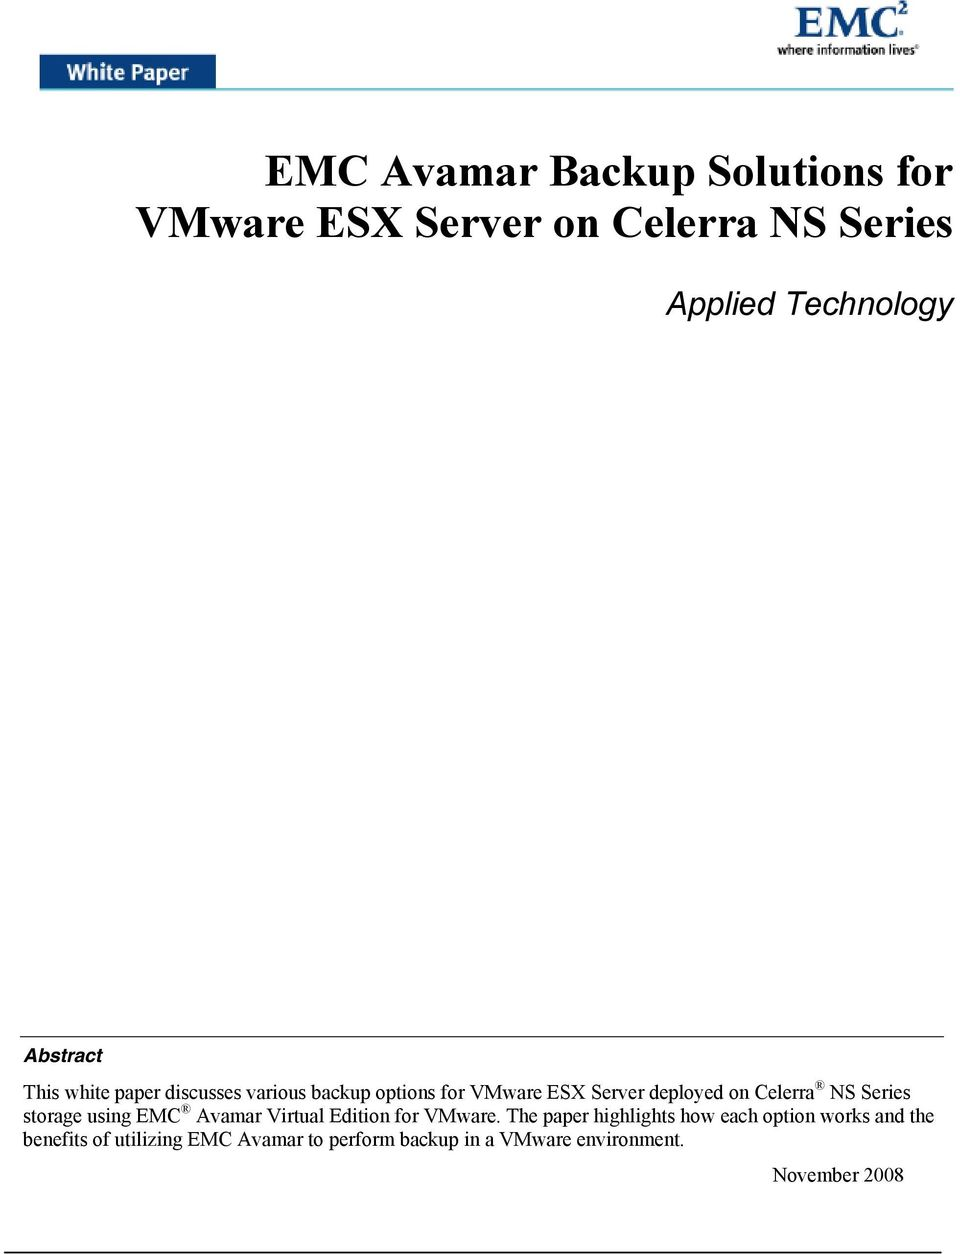 storage using EMC Avamar Virtual Edition for VMware.